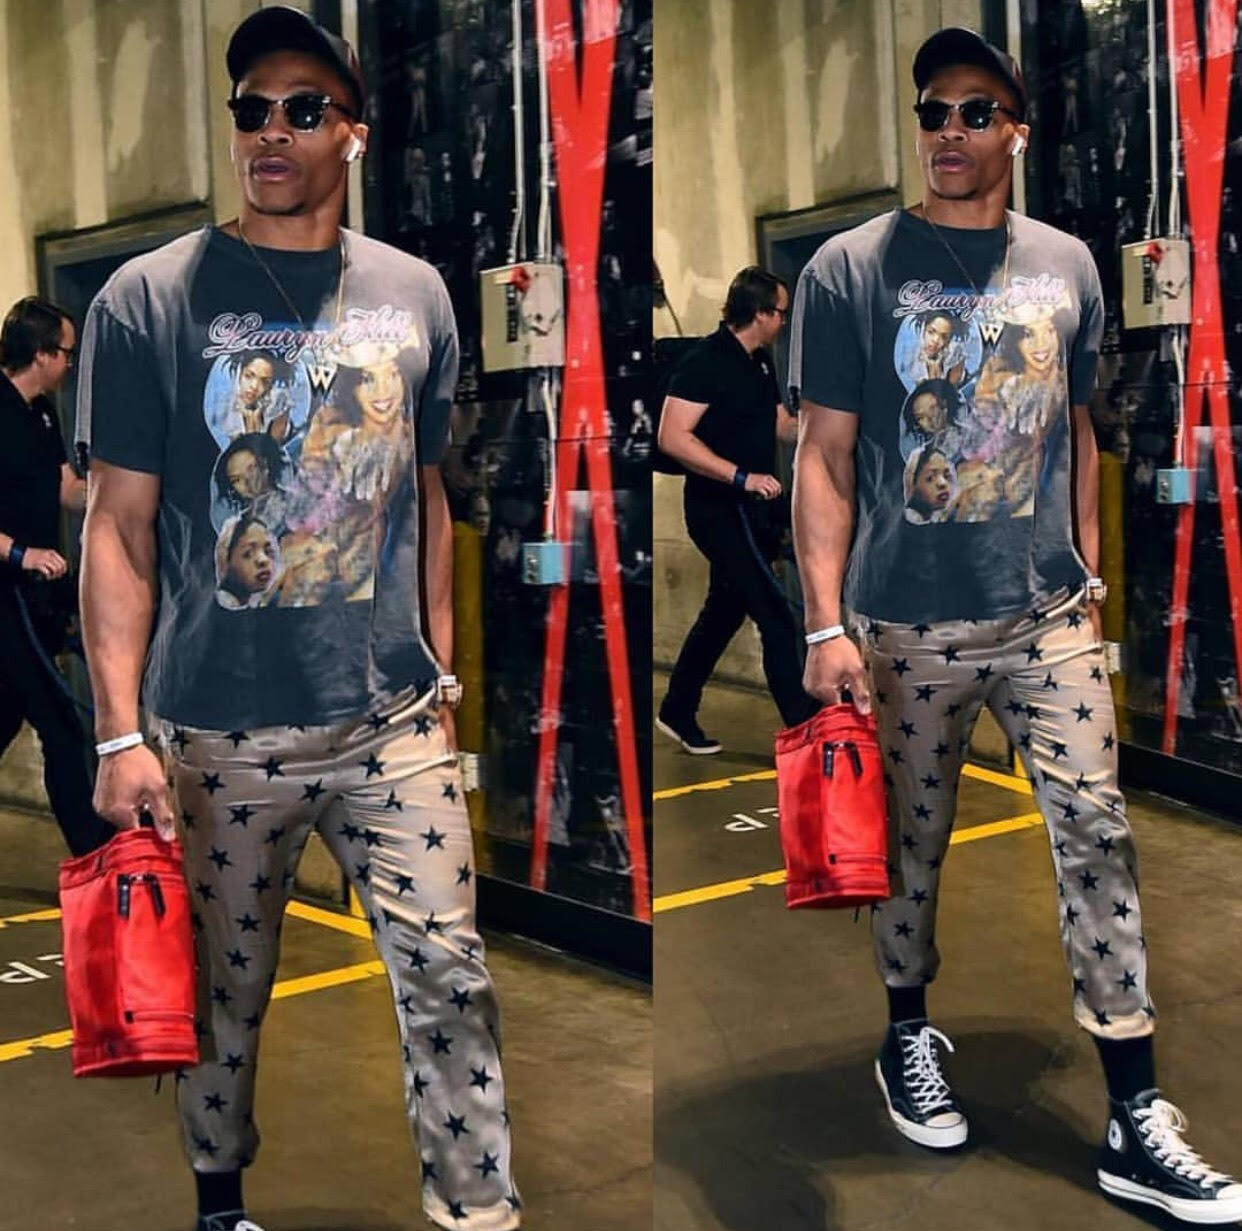 Russell Westbrook's vintage Lauryn Hill shirt and Converse sneakers